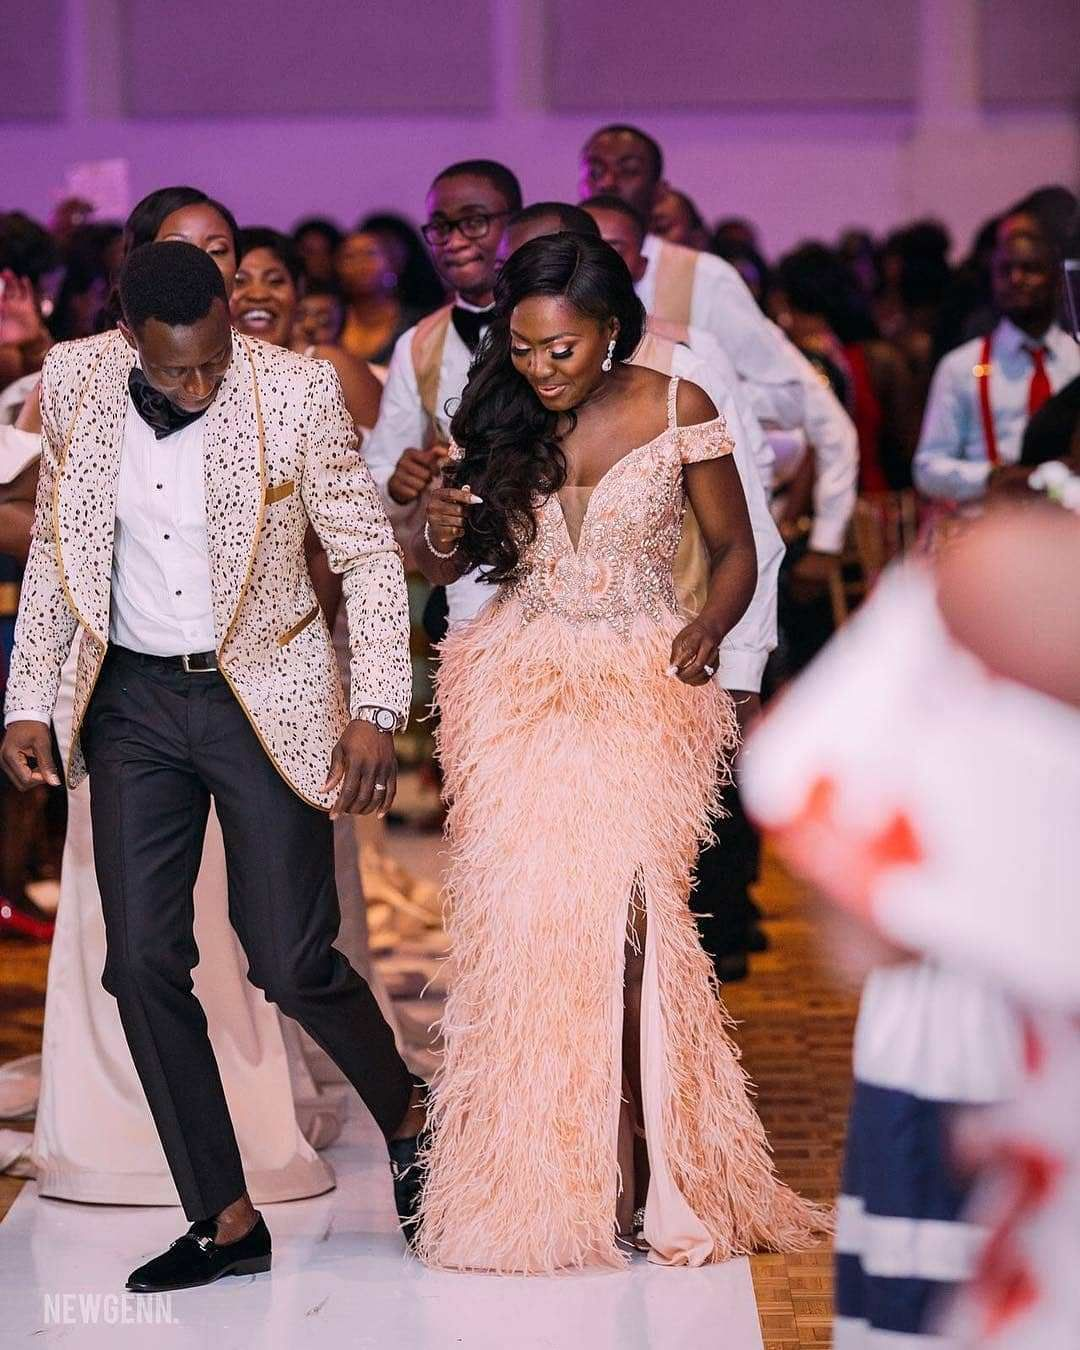 The Sweetest Wedding Reception Dresses Ever A Million Styles Wedding Reception Dress African Fashion Dresses Wedding Reception Gowns [ 1350 x 1080 Pixel ]